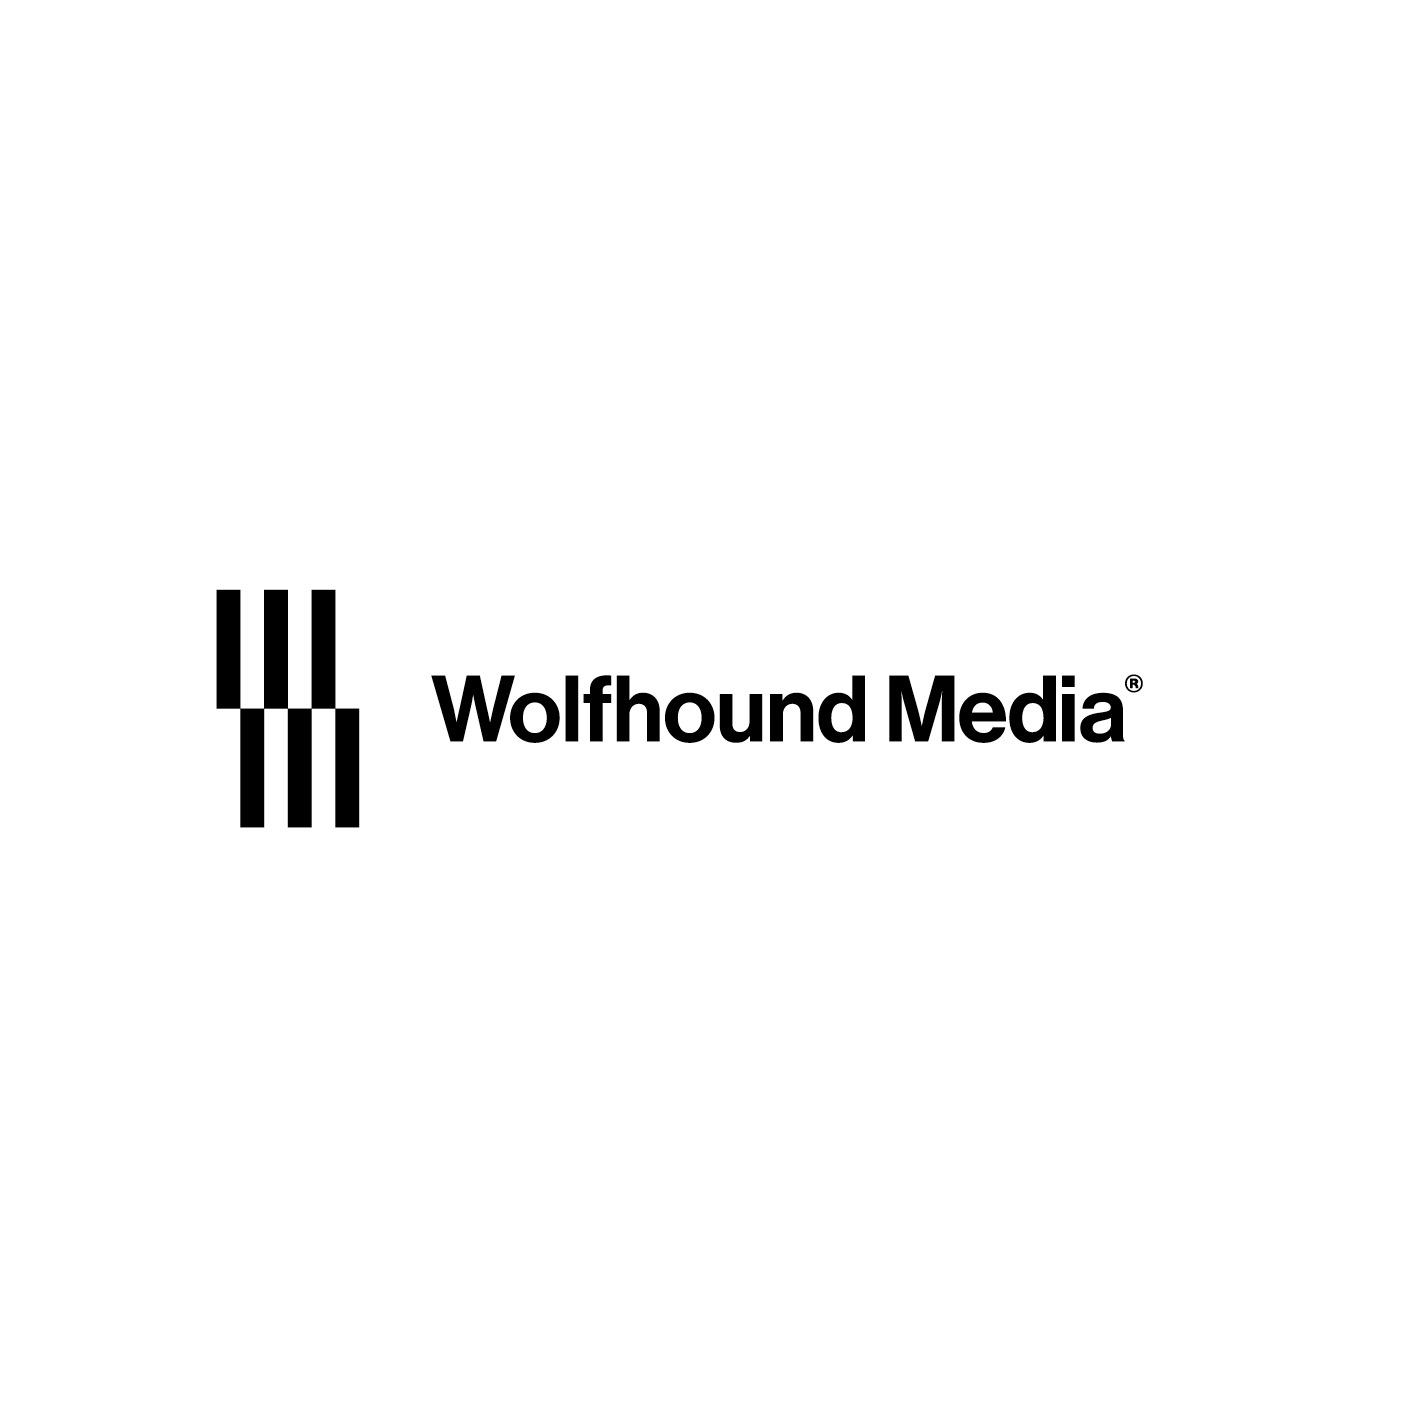 Cover image: Wolfhound Media